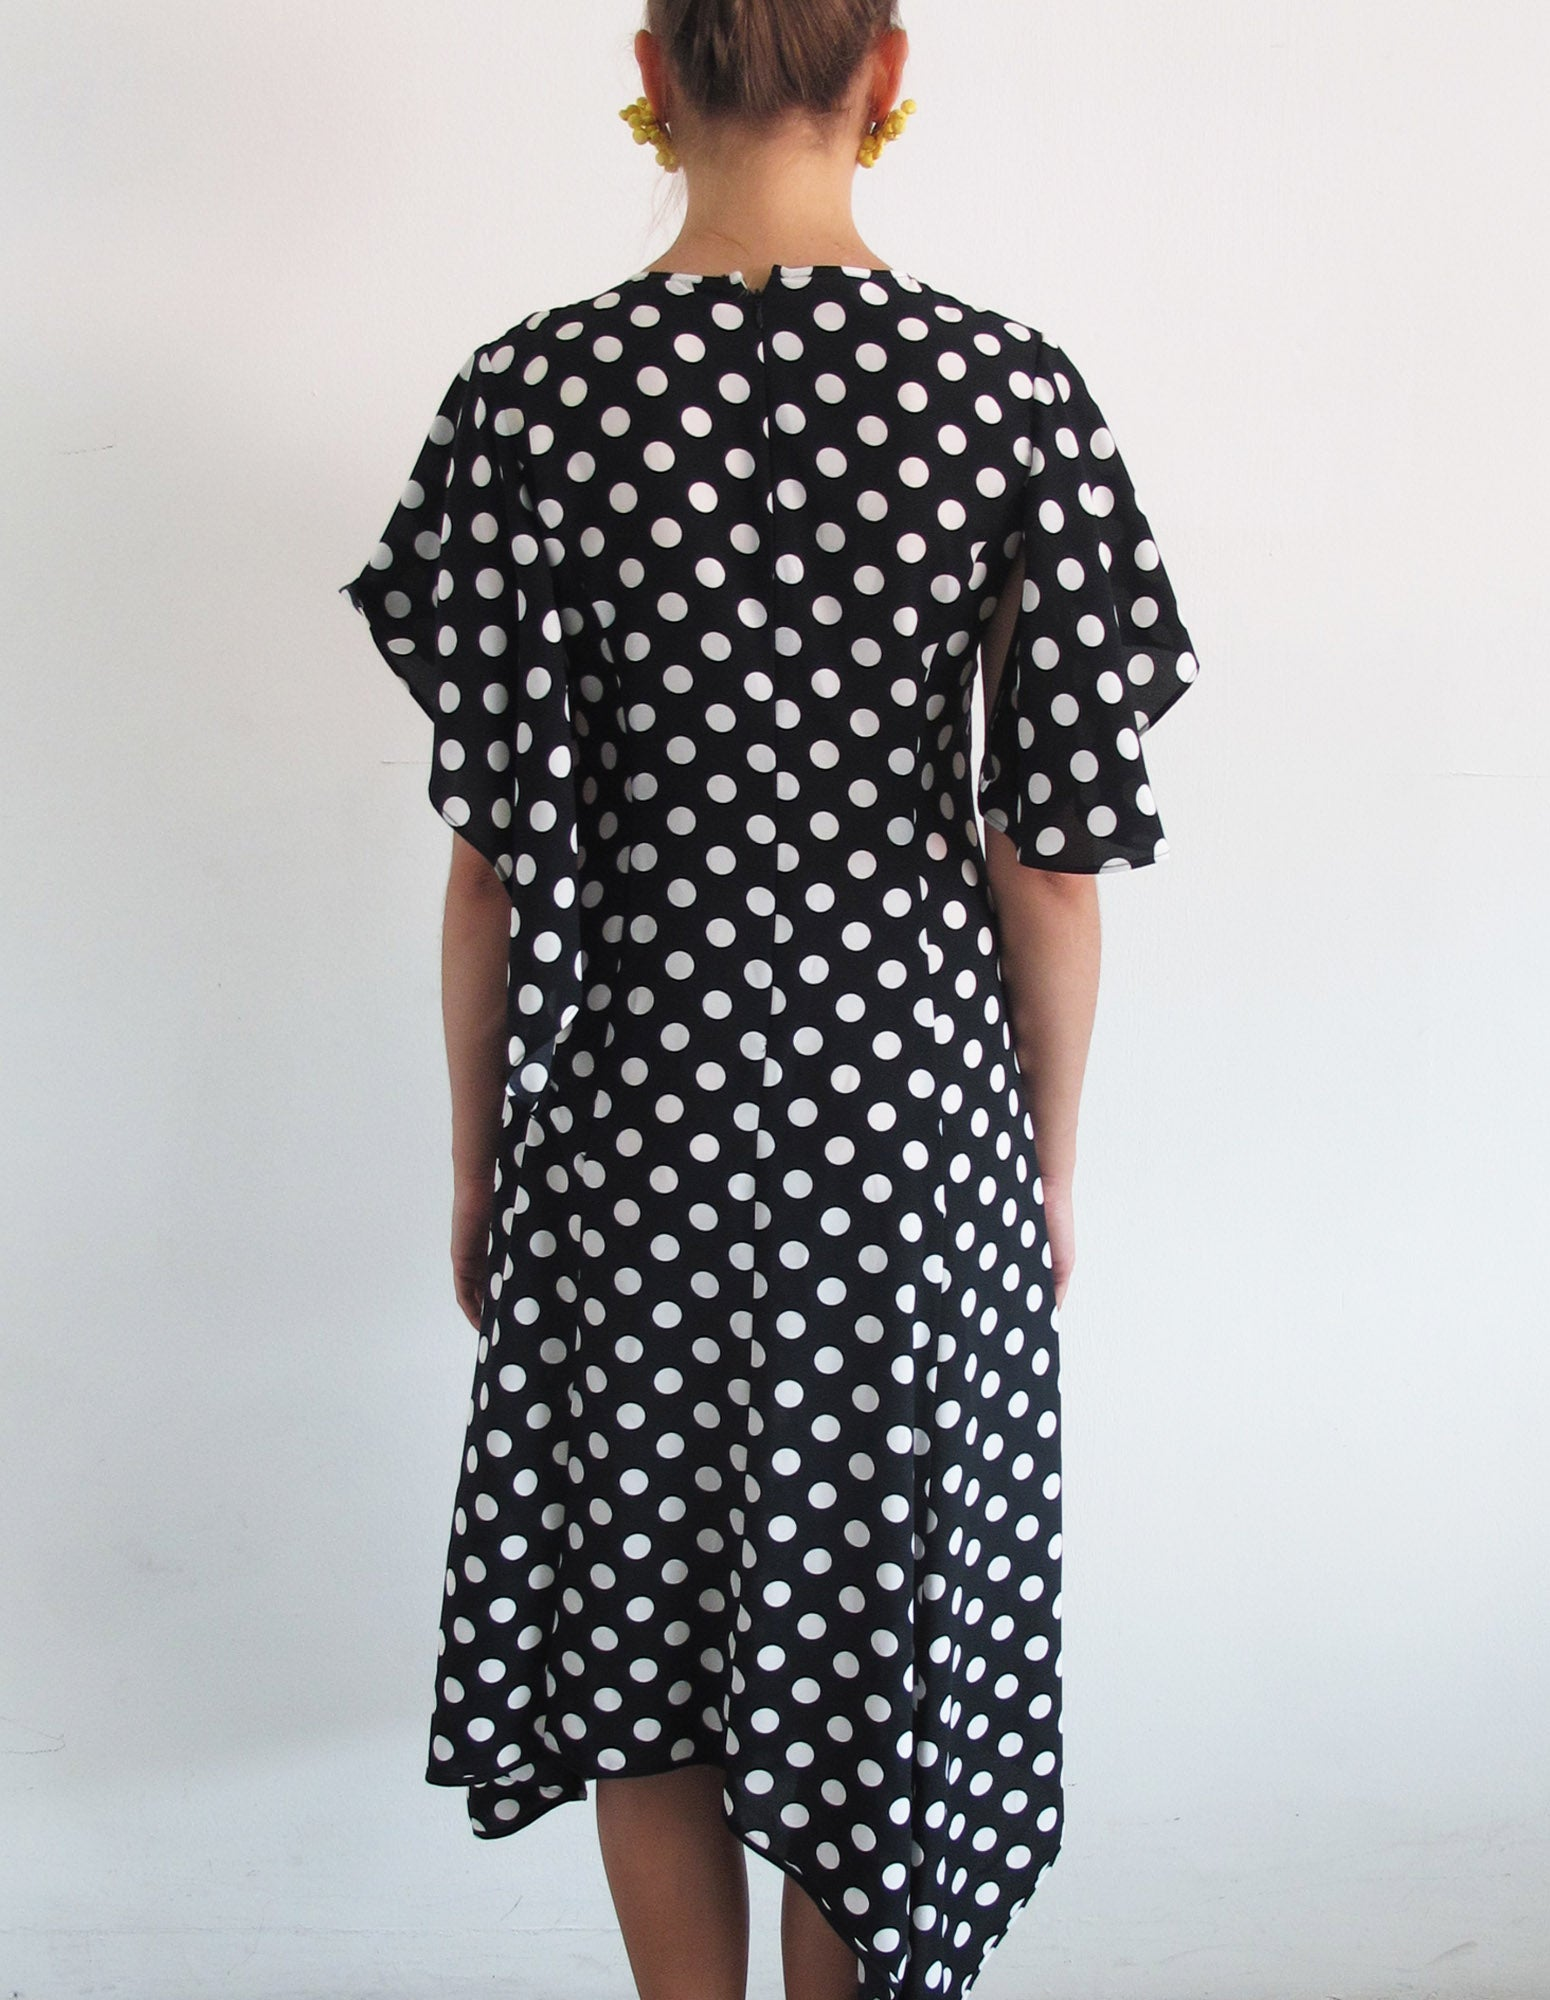 AUDREY POLKA DRESS